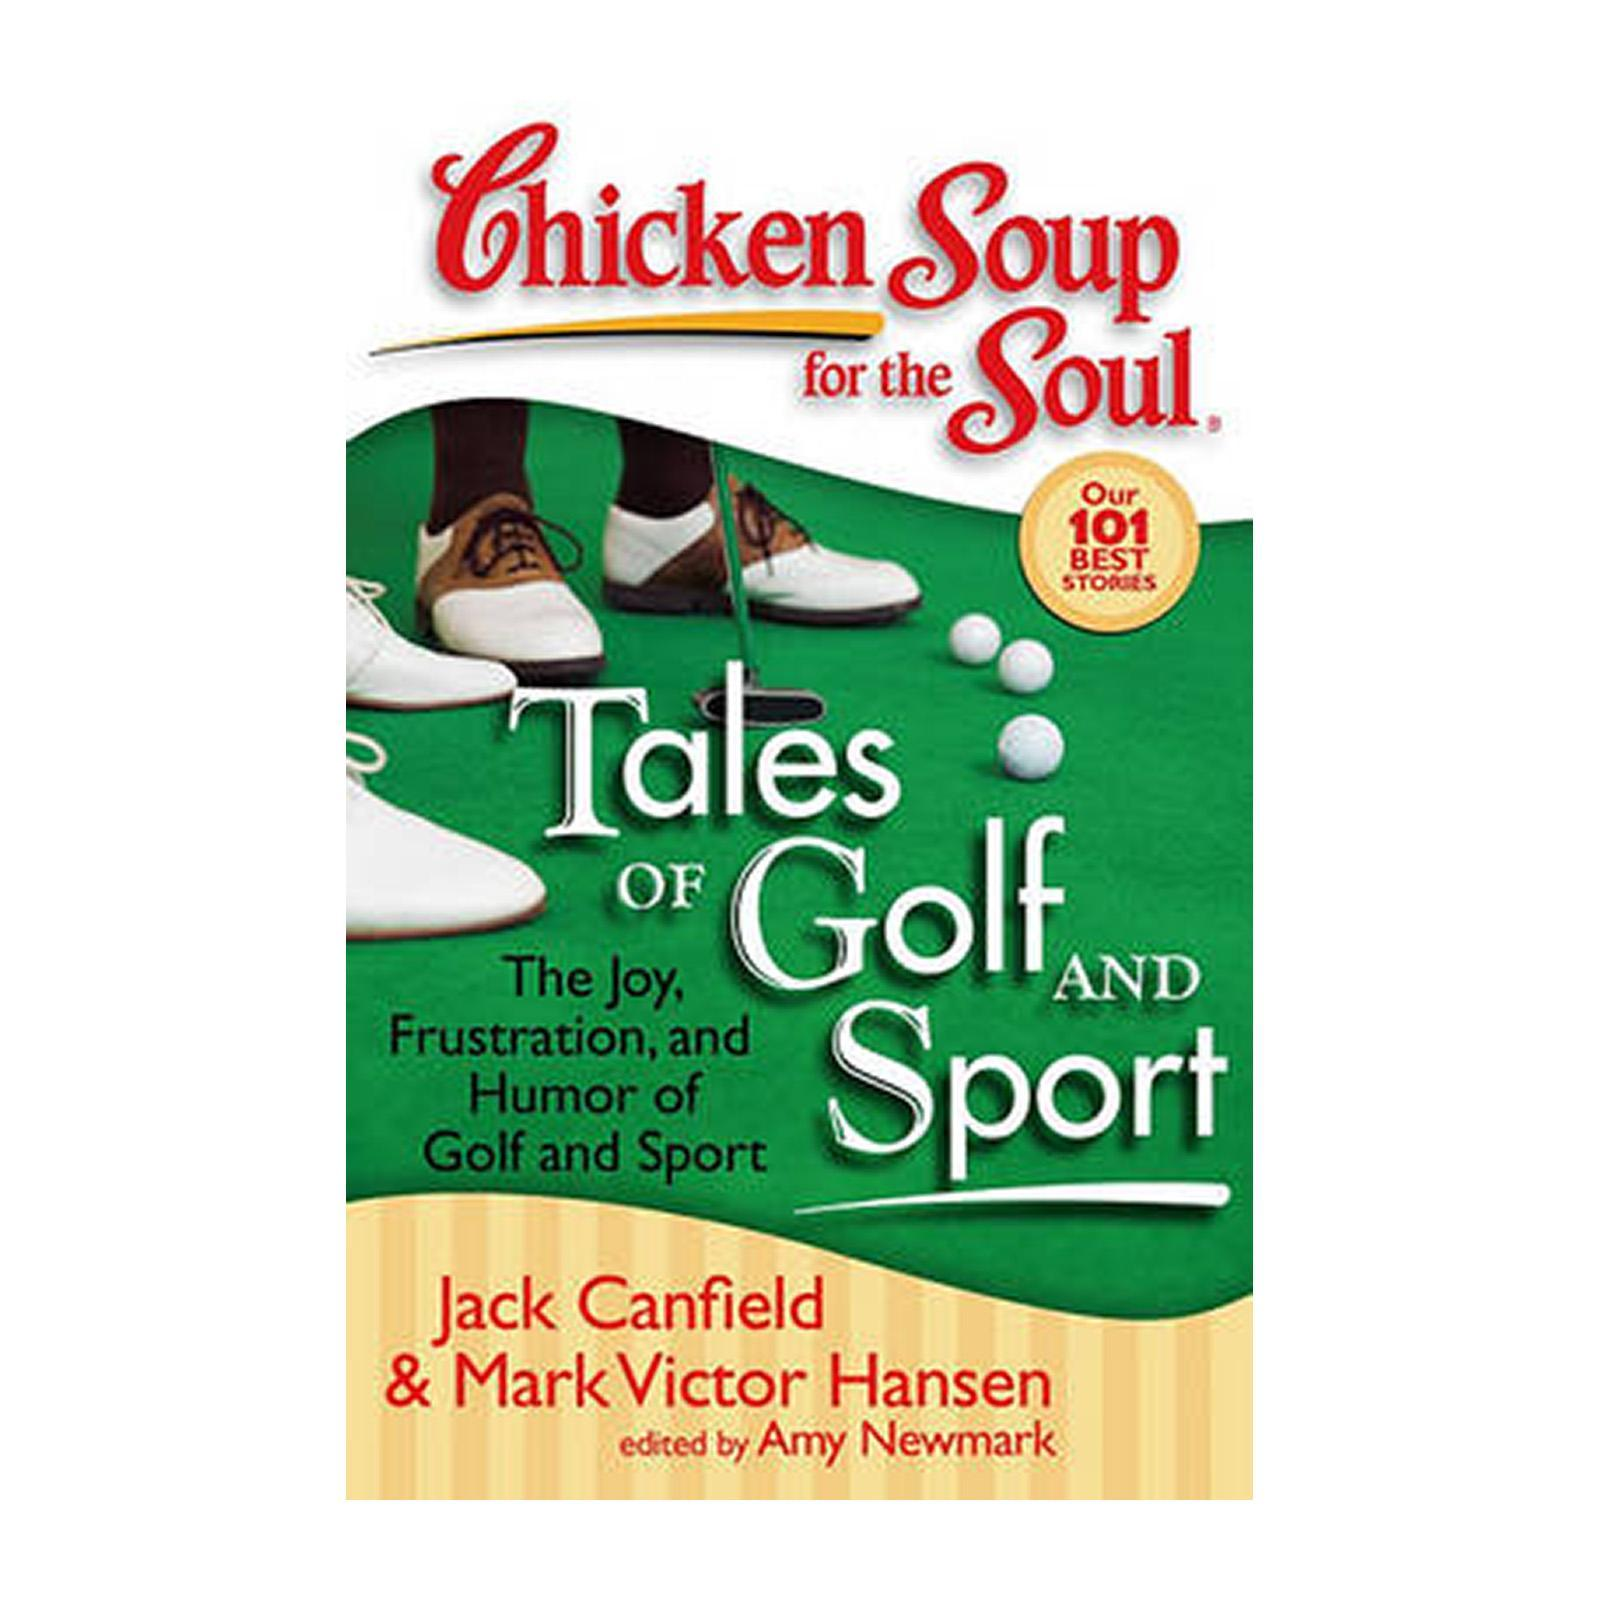 Chicken Soup For The Soul: Tales Of Golf And Sport: The Joy Frustration And Humor Of Golf And Sport (Paperback)